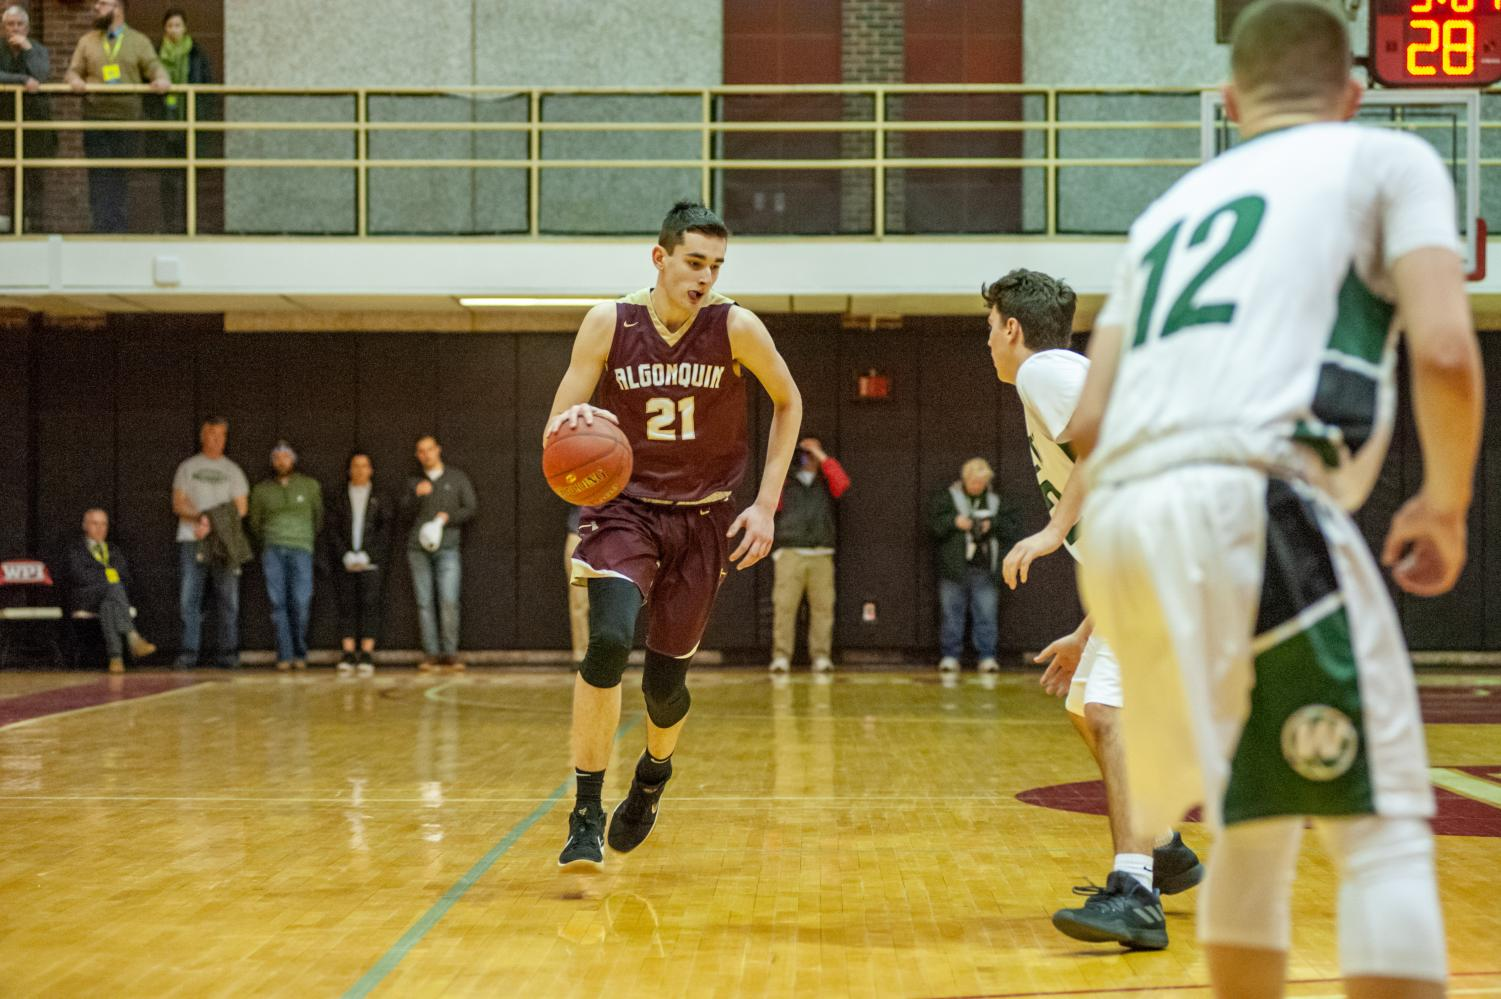 Freshman Alex Karaban had a standout performance during the district semi-finals where he scored 20 points at  Worcester Polytechnic Institute on March 3.